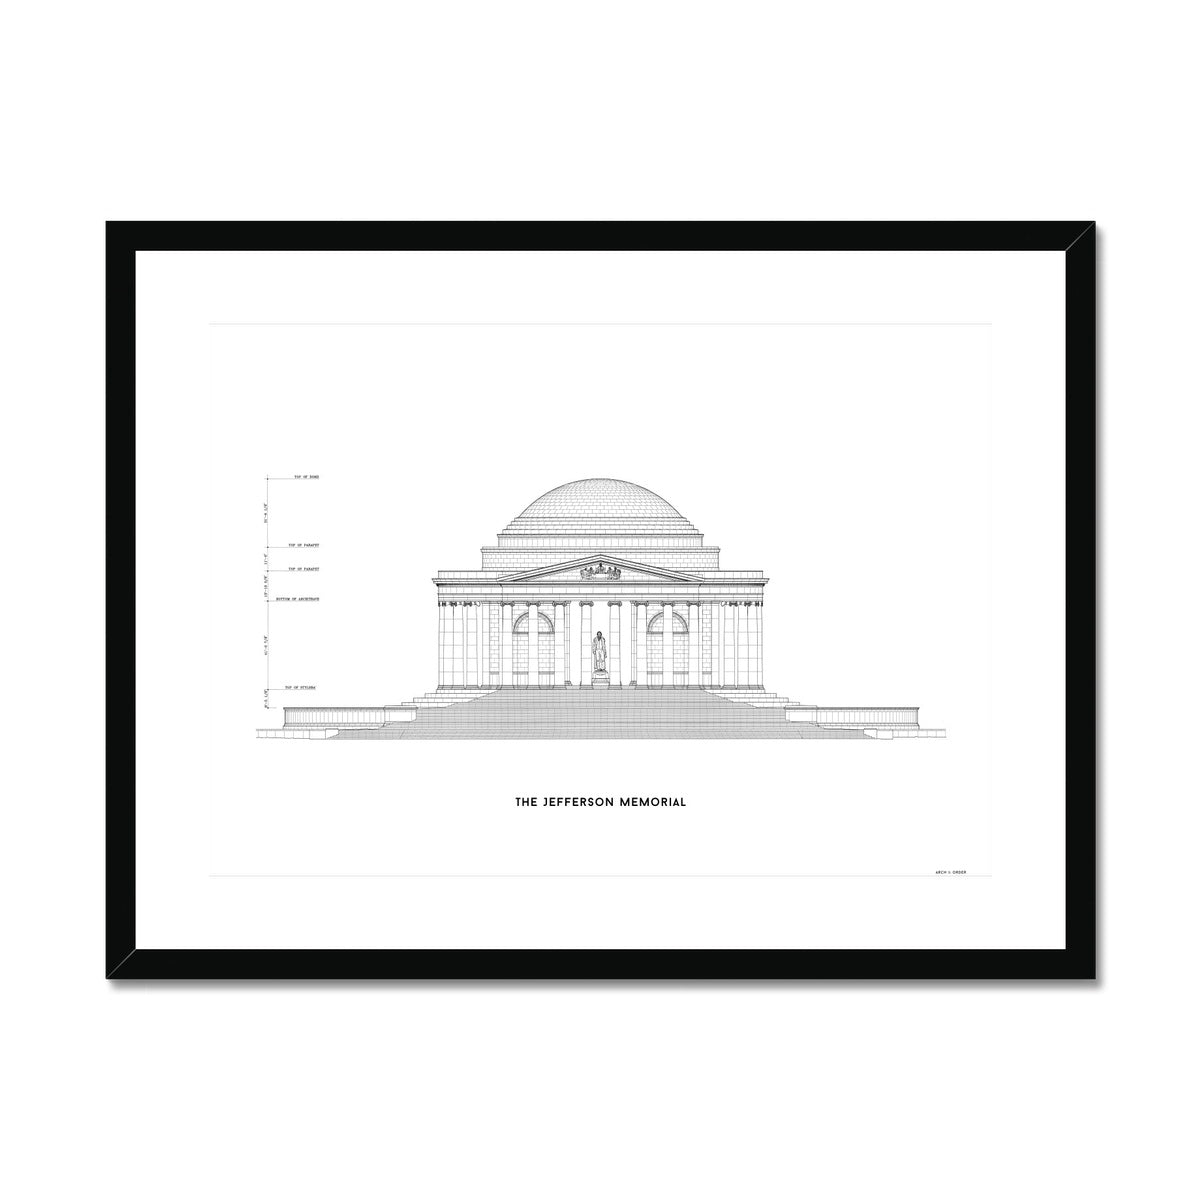 The Jefferson Memorial North Elevation - White -  Framed & Mounted Print